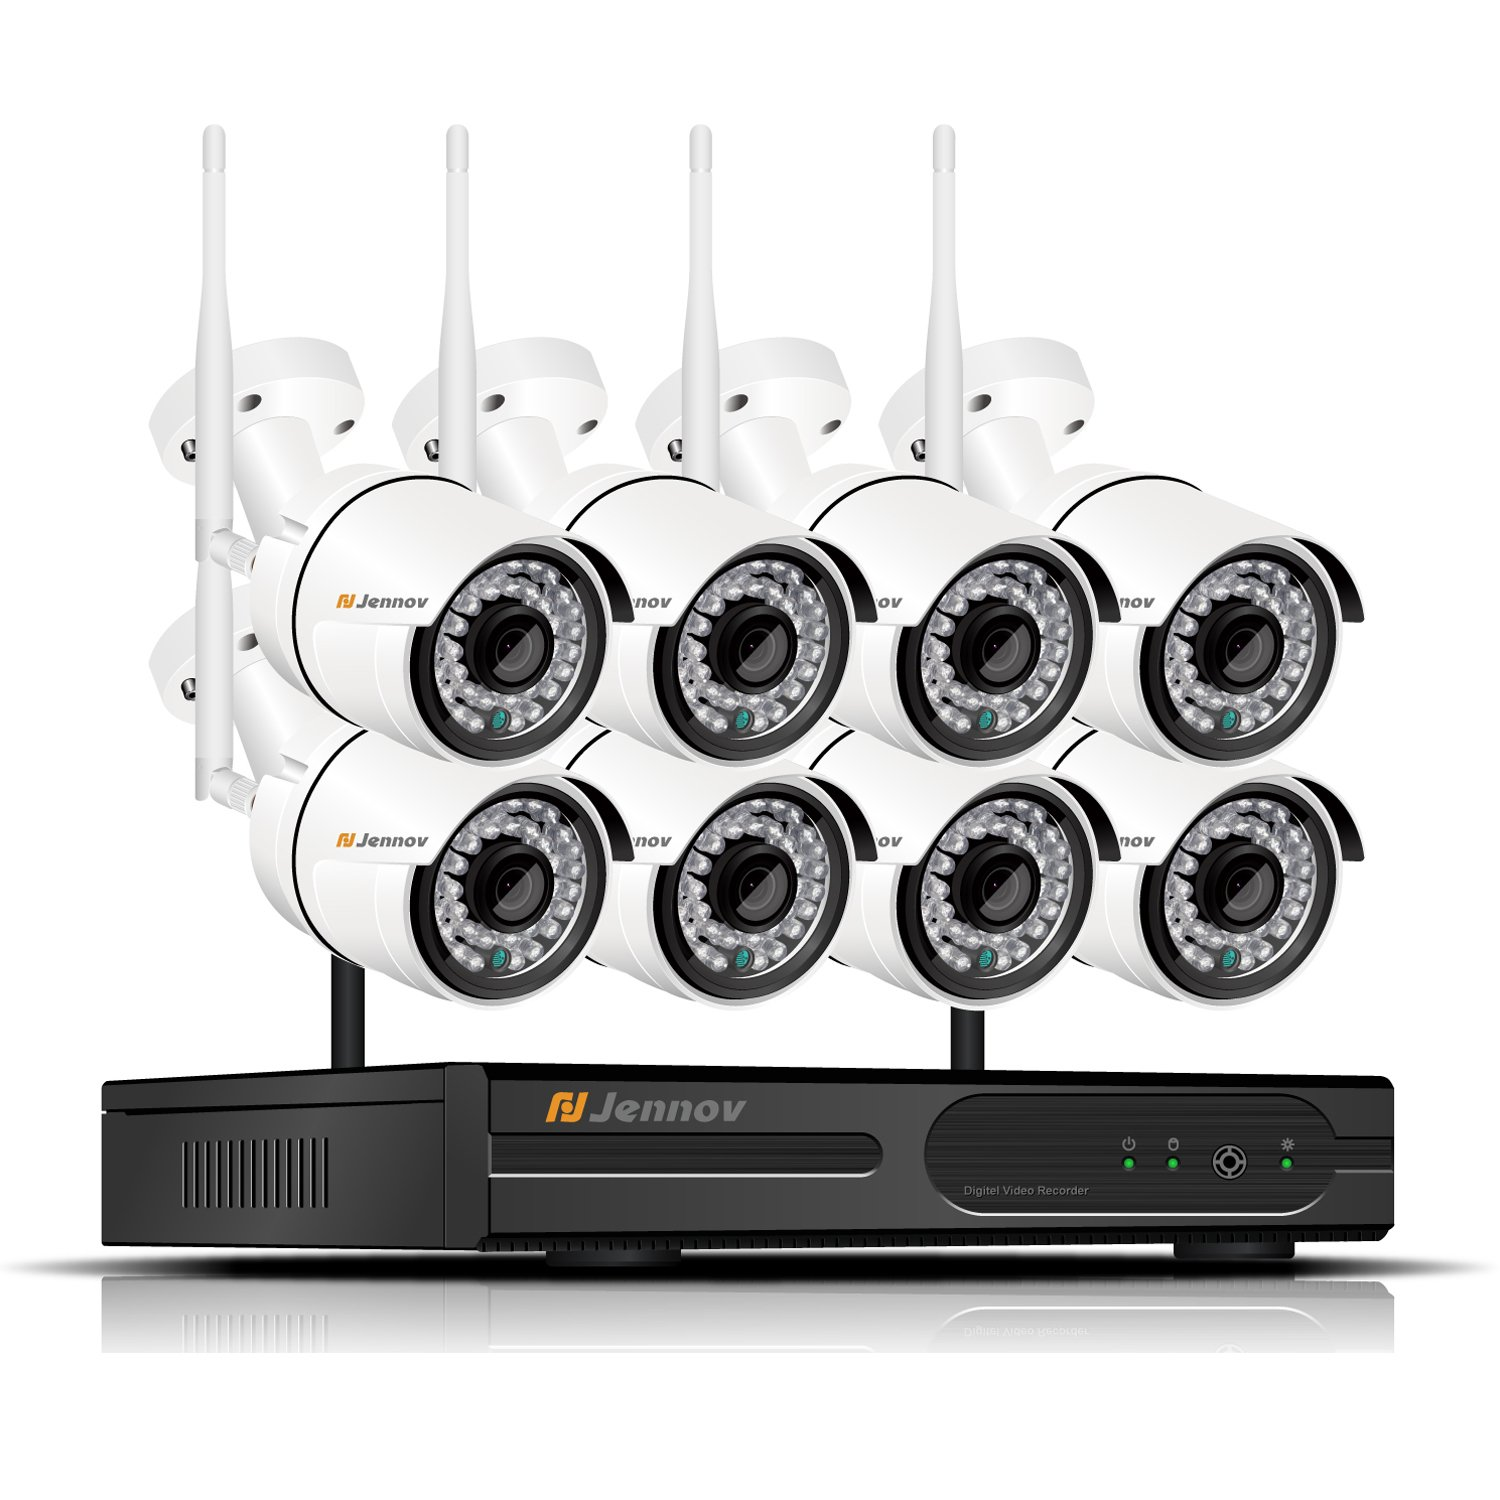 8 Channel Home Wireless Security Camera System WiFi Surveillance with 1080P NVR 8PCS 960P Outdoor CCTV IP Network Cameras Remote Control View No Hard Drive Jennov Security Camera System Wireless